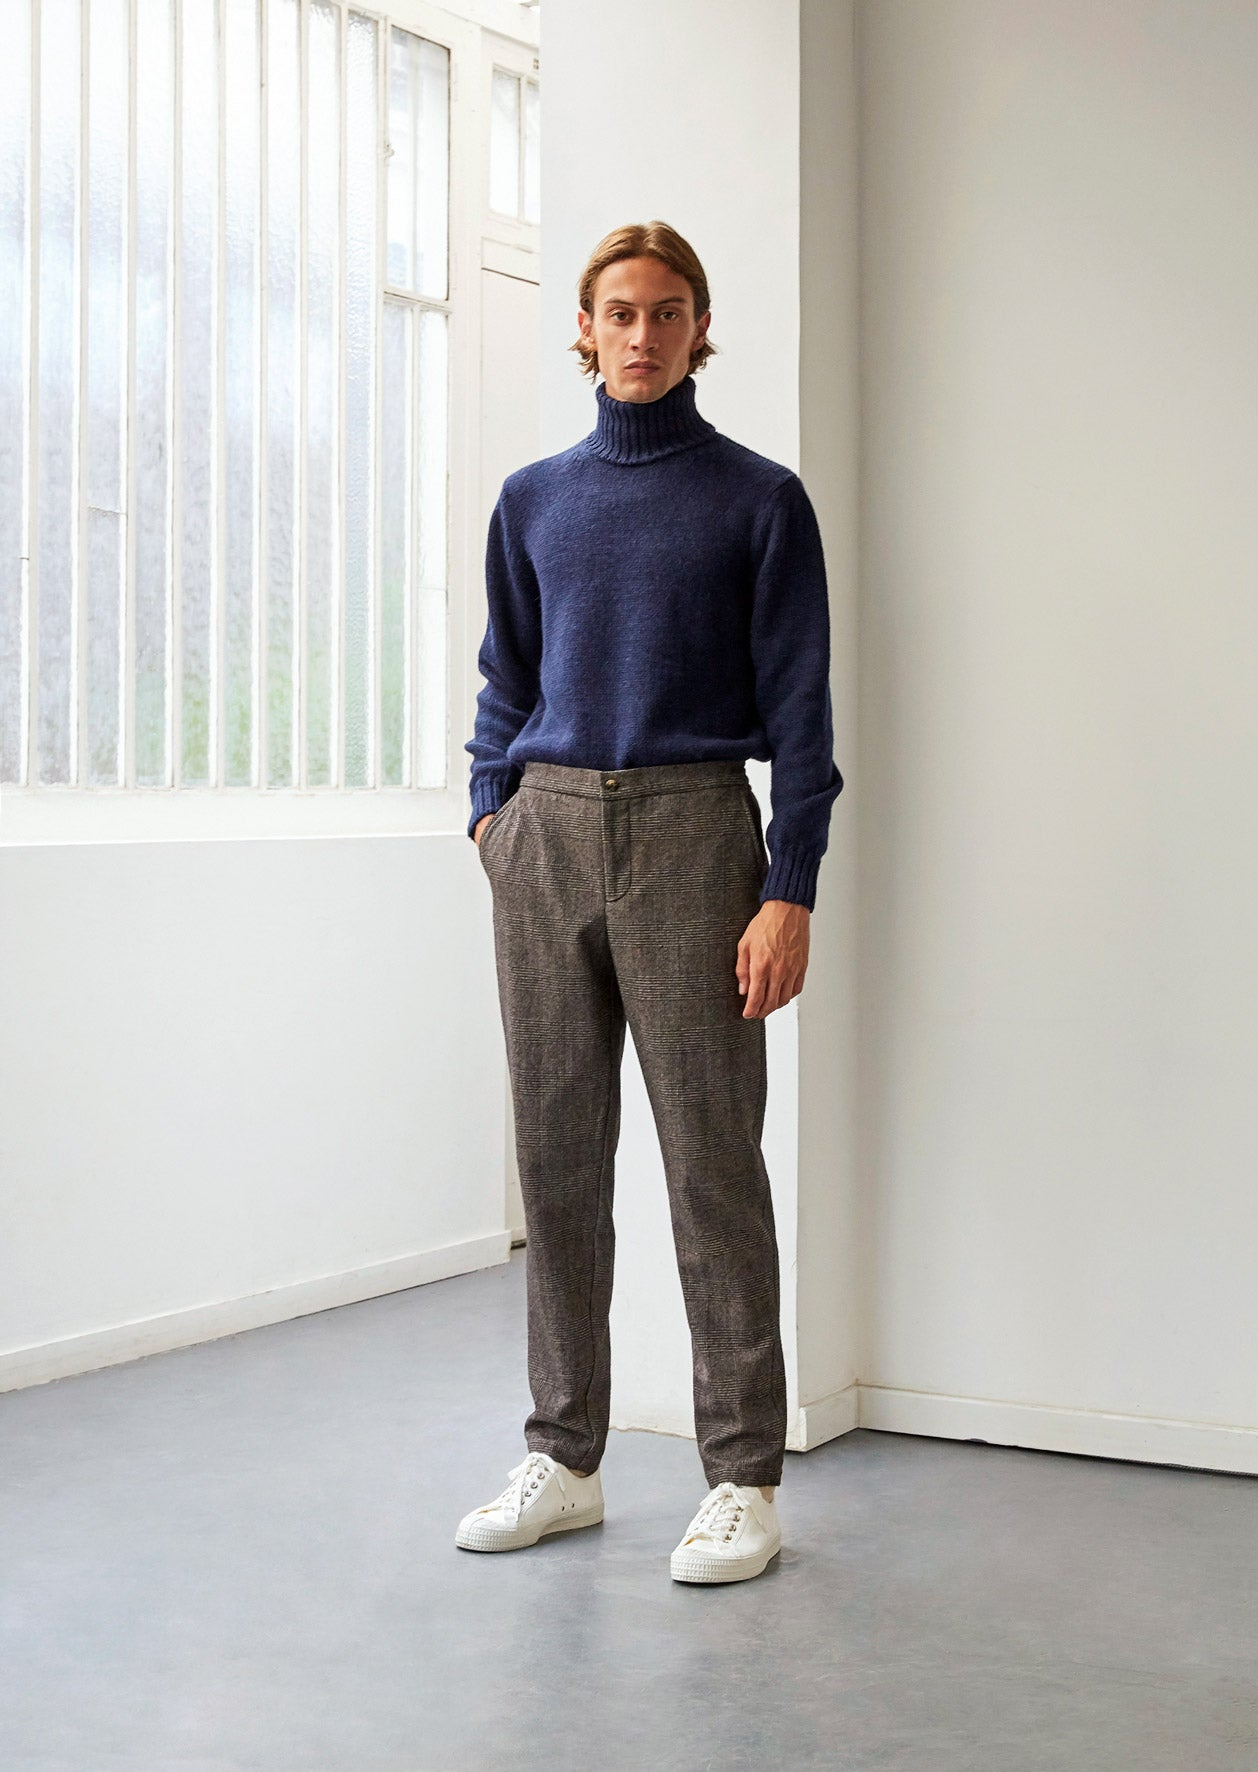 Easy buttoned trousers - Wool & cotton blend - Brown glen check